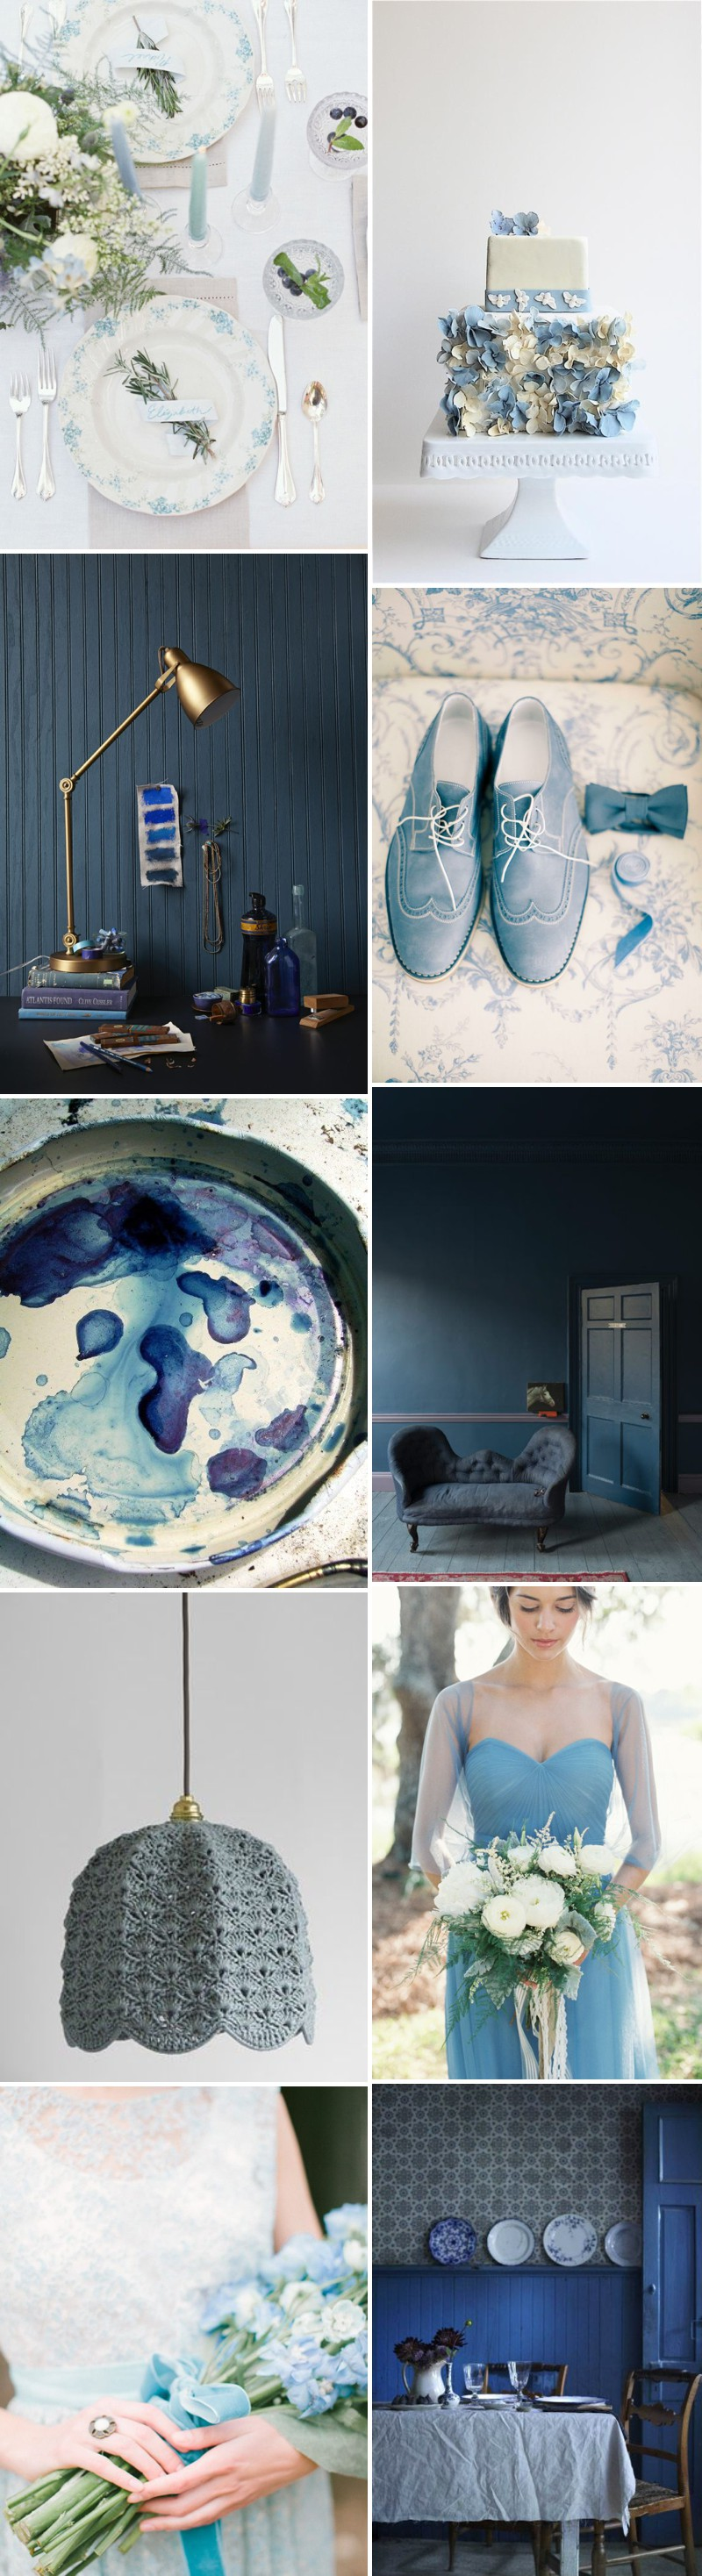 An Inspiration Mood Board For A Blue Colour Scheme Themed Wedding._0001